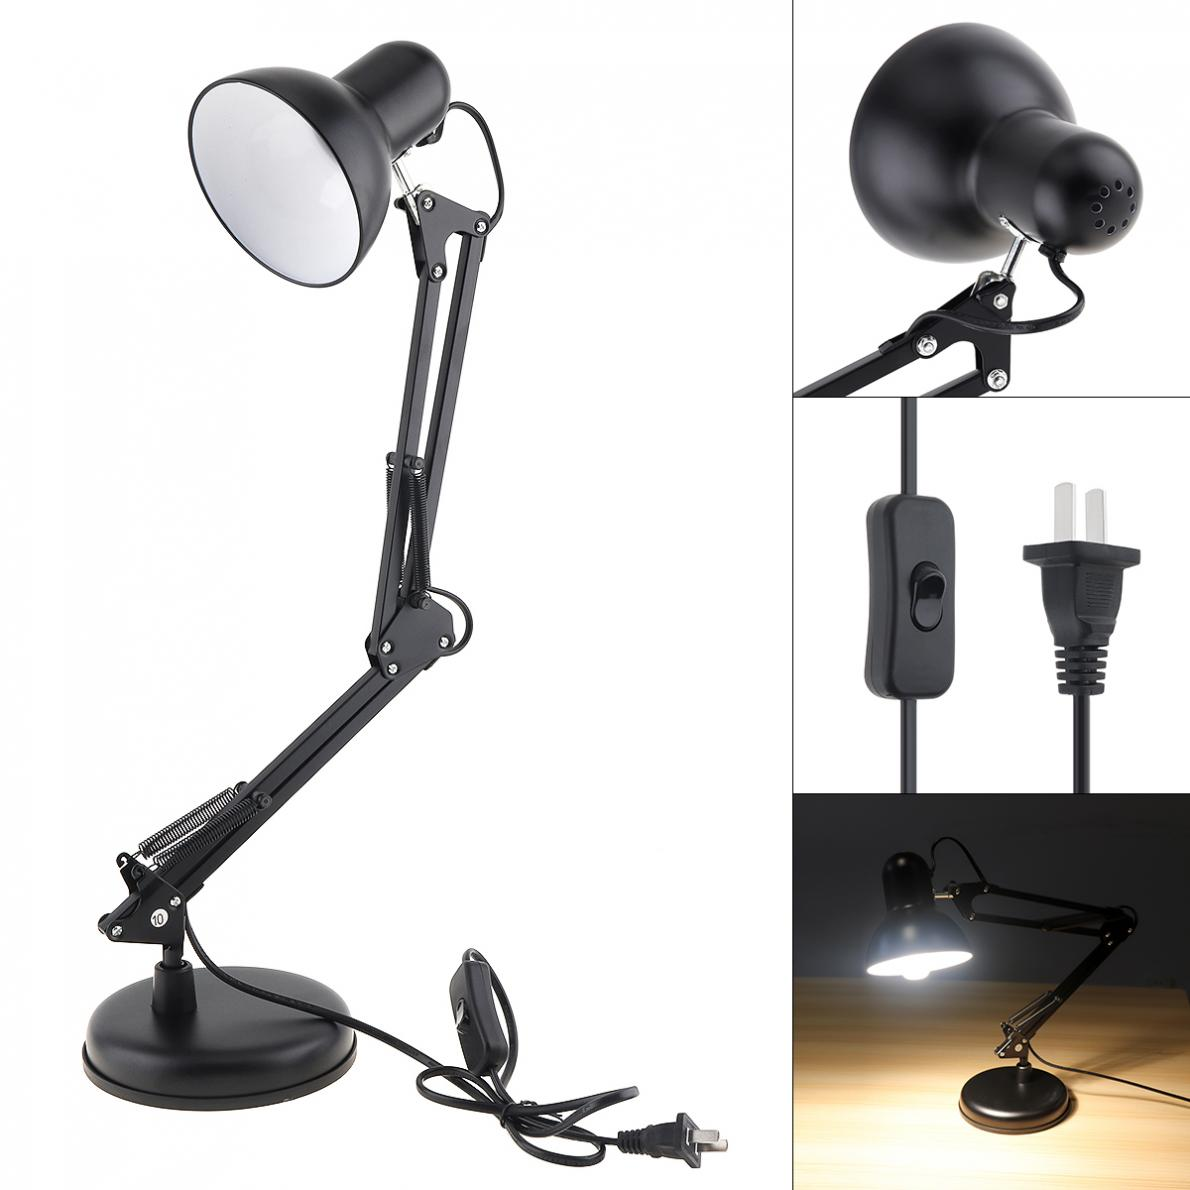 Black Flexible Swing Arm Clamp Mount Desk Lamp with Base and Key Switch Support E27 Bulb for Office / Home HOT sale Desk Lamps     - title=